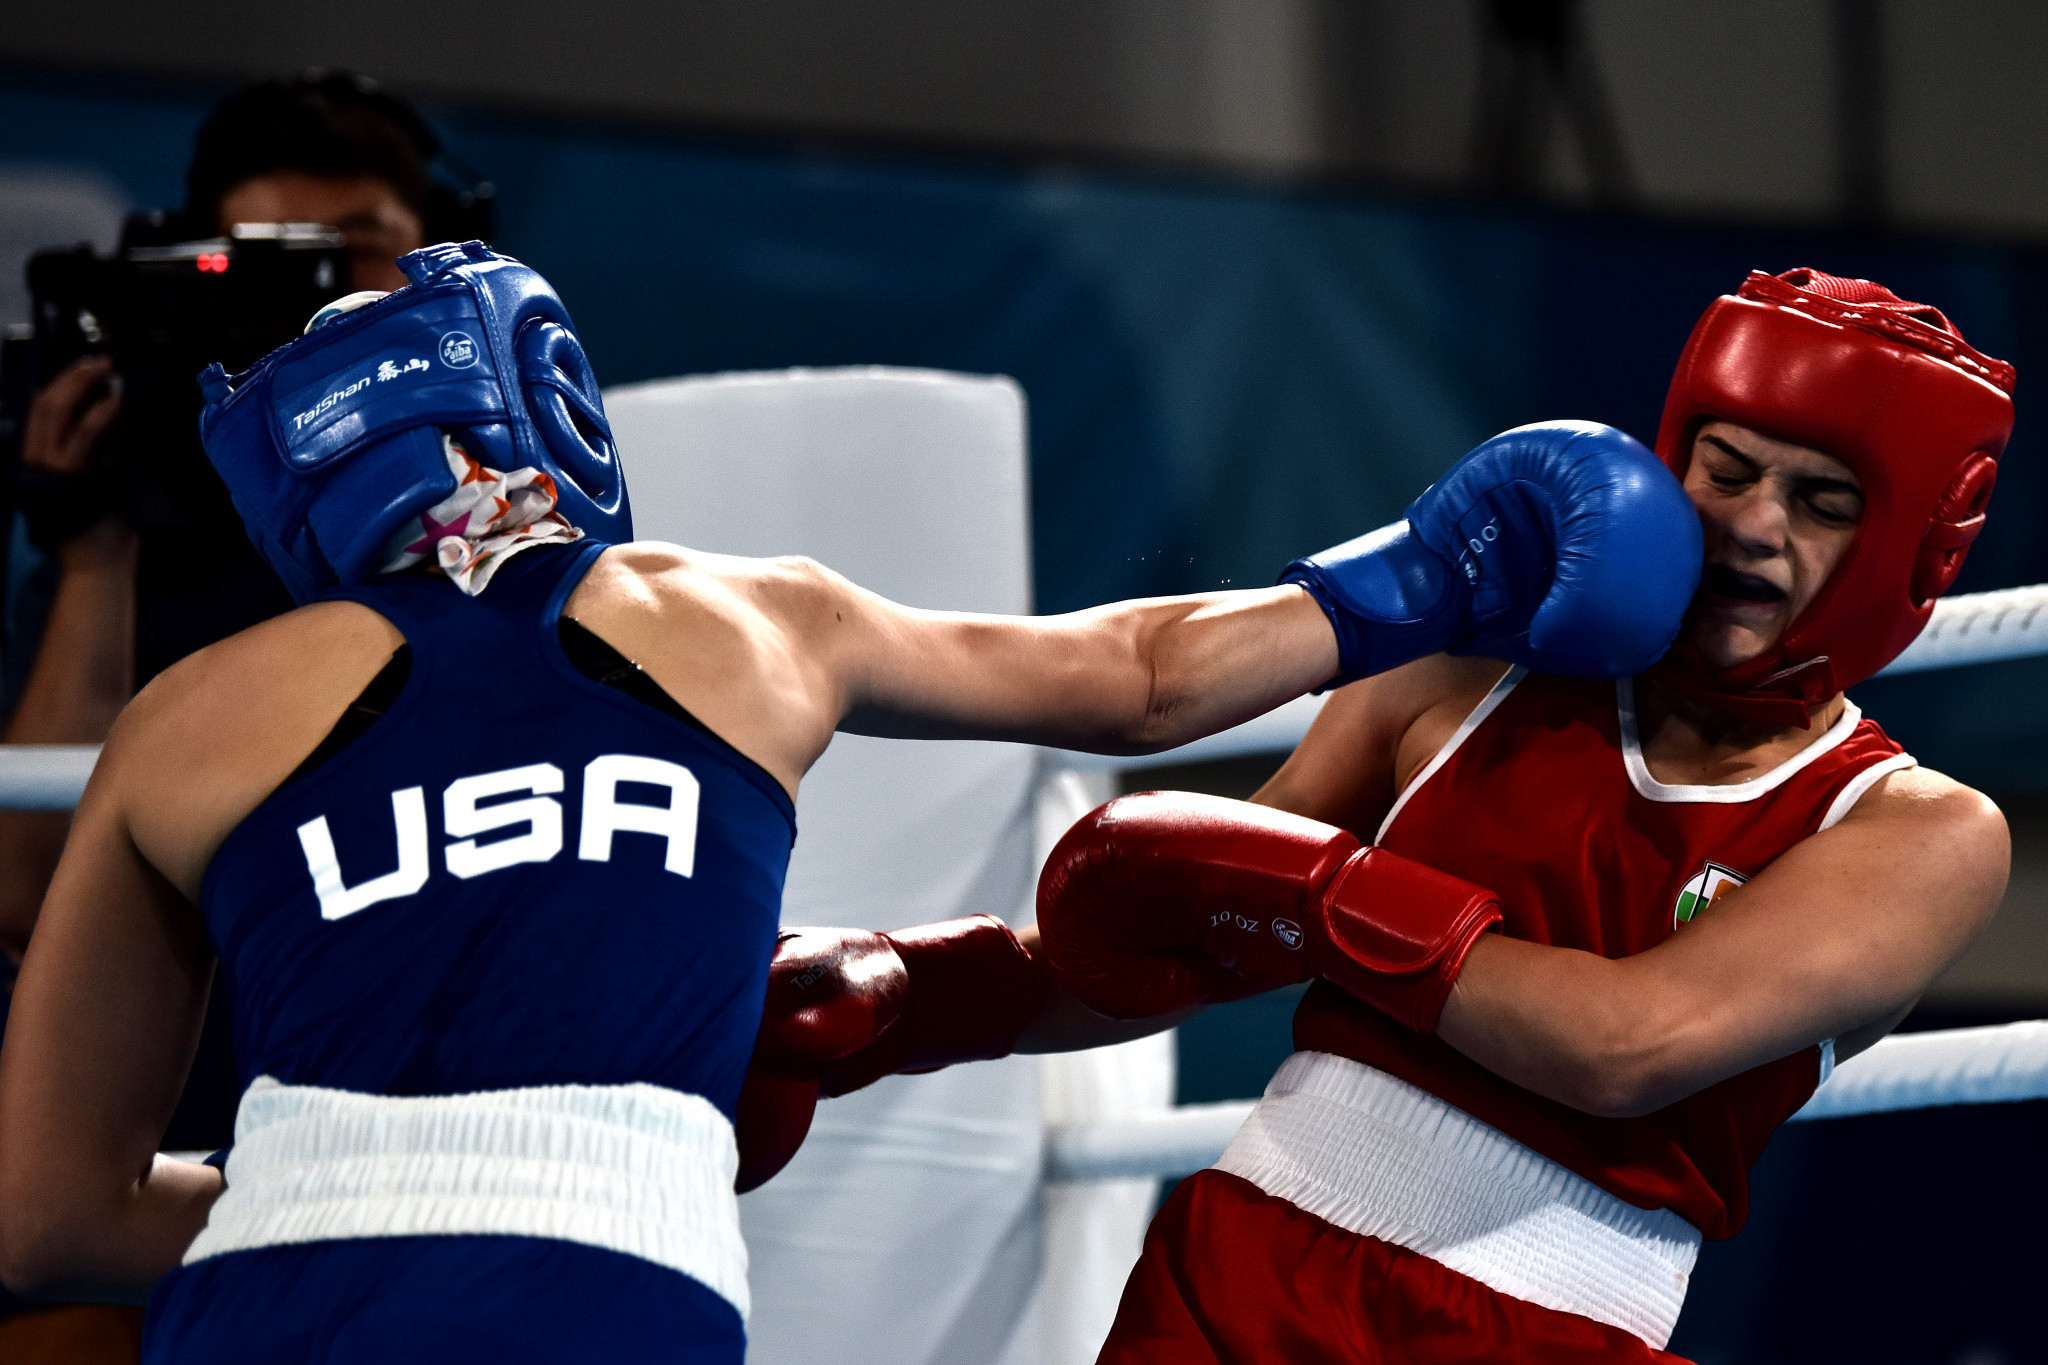 Argentina and United States pull out of AIBA Youth World Boxing Championships because of coronavirus